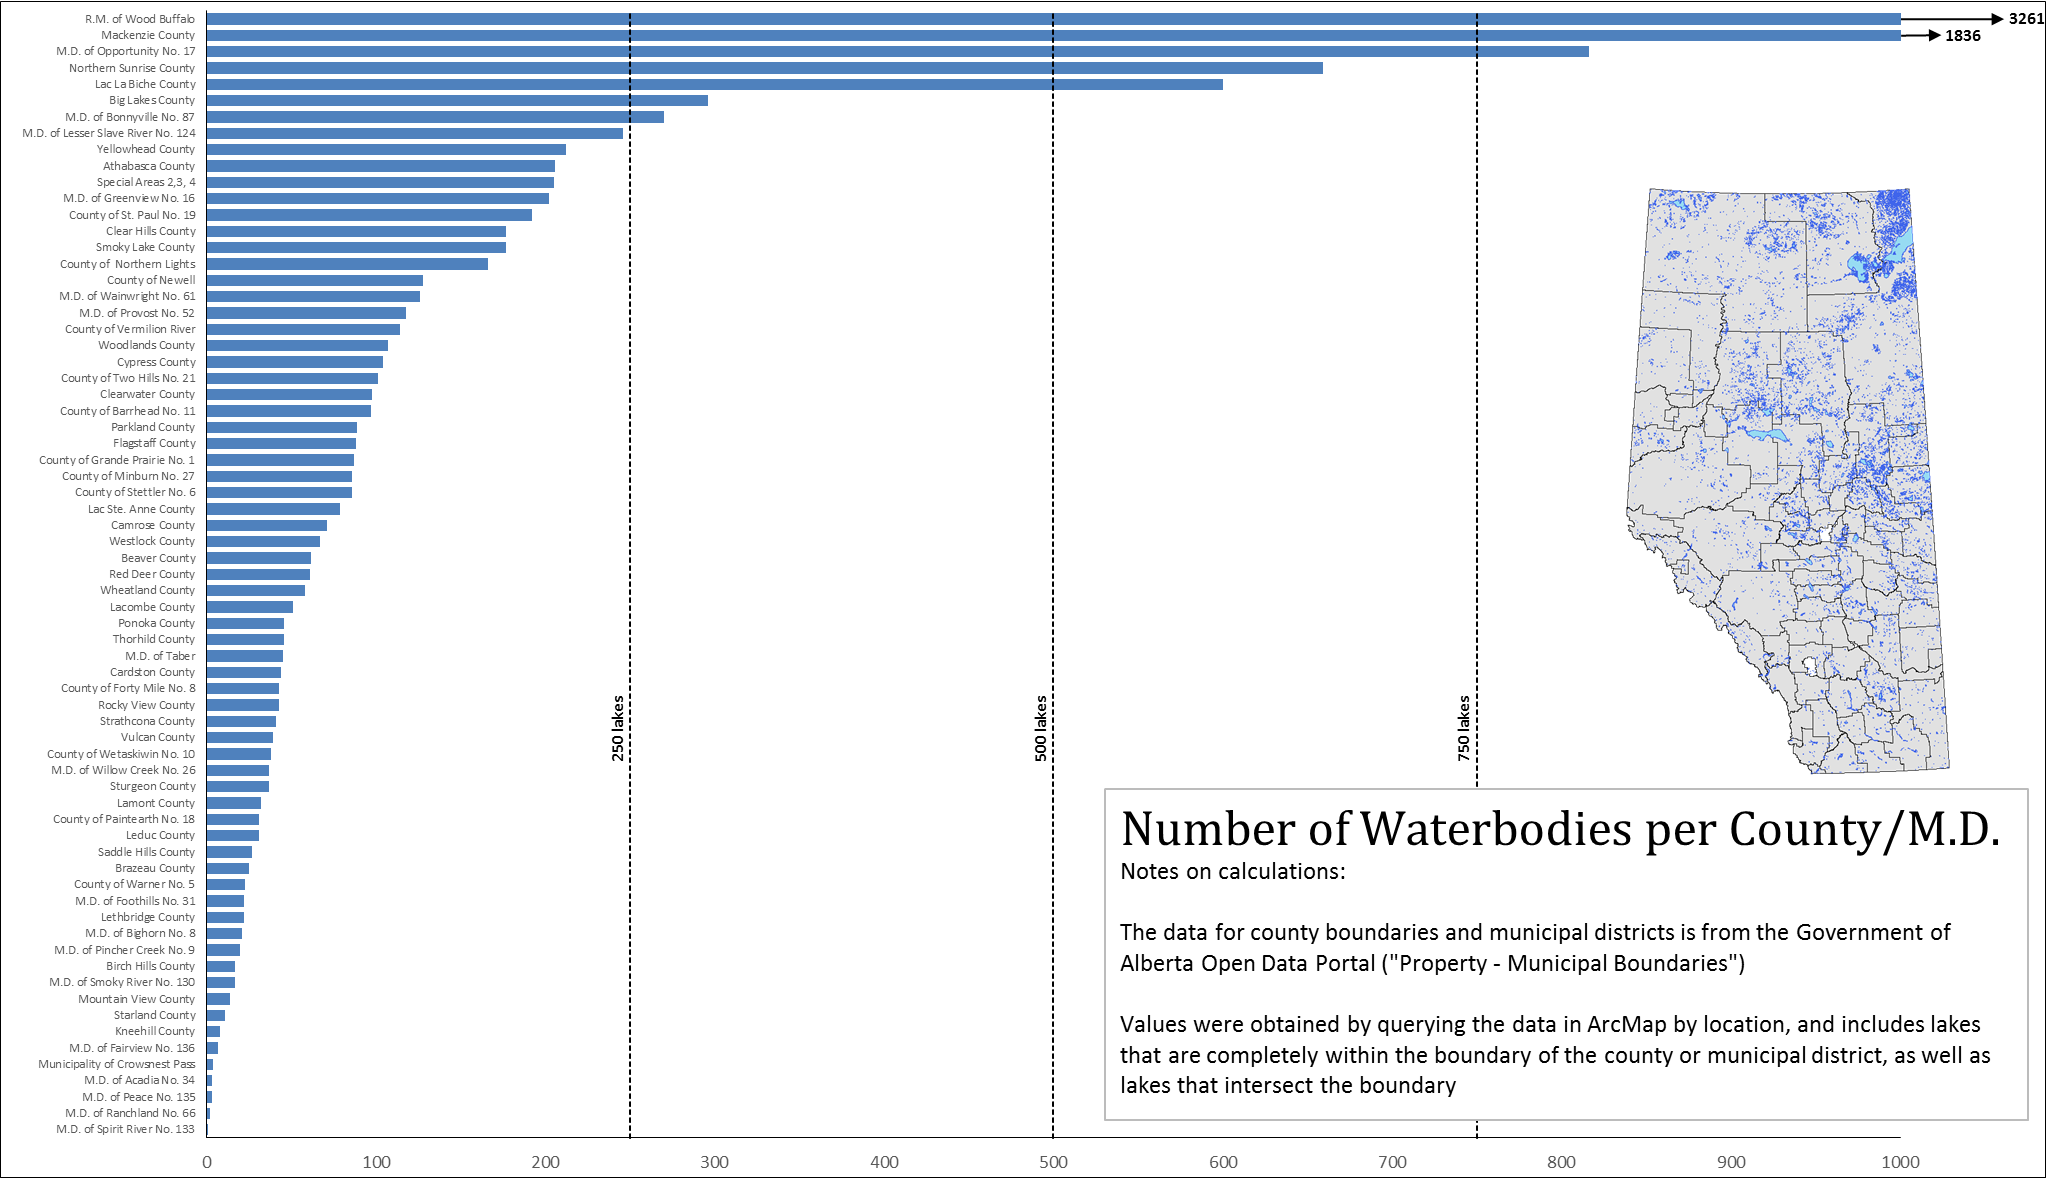 Number of Waterbodies per County/M.D.